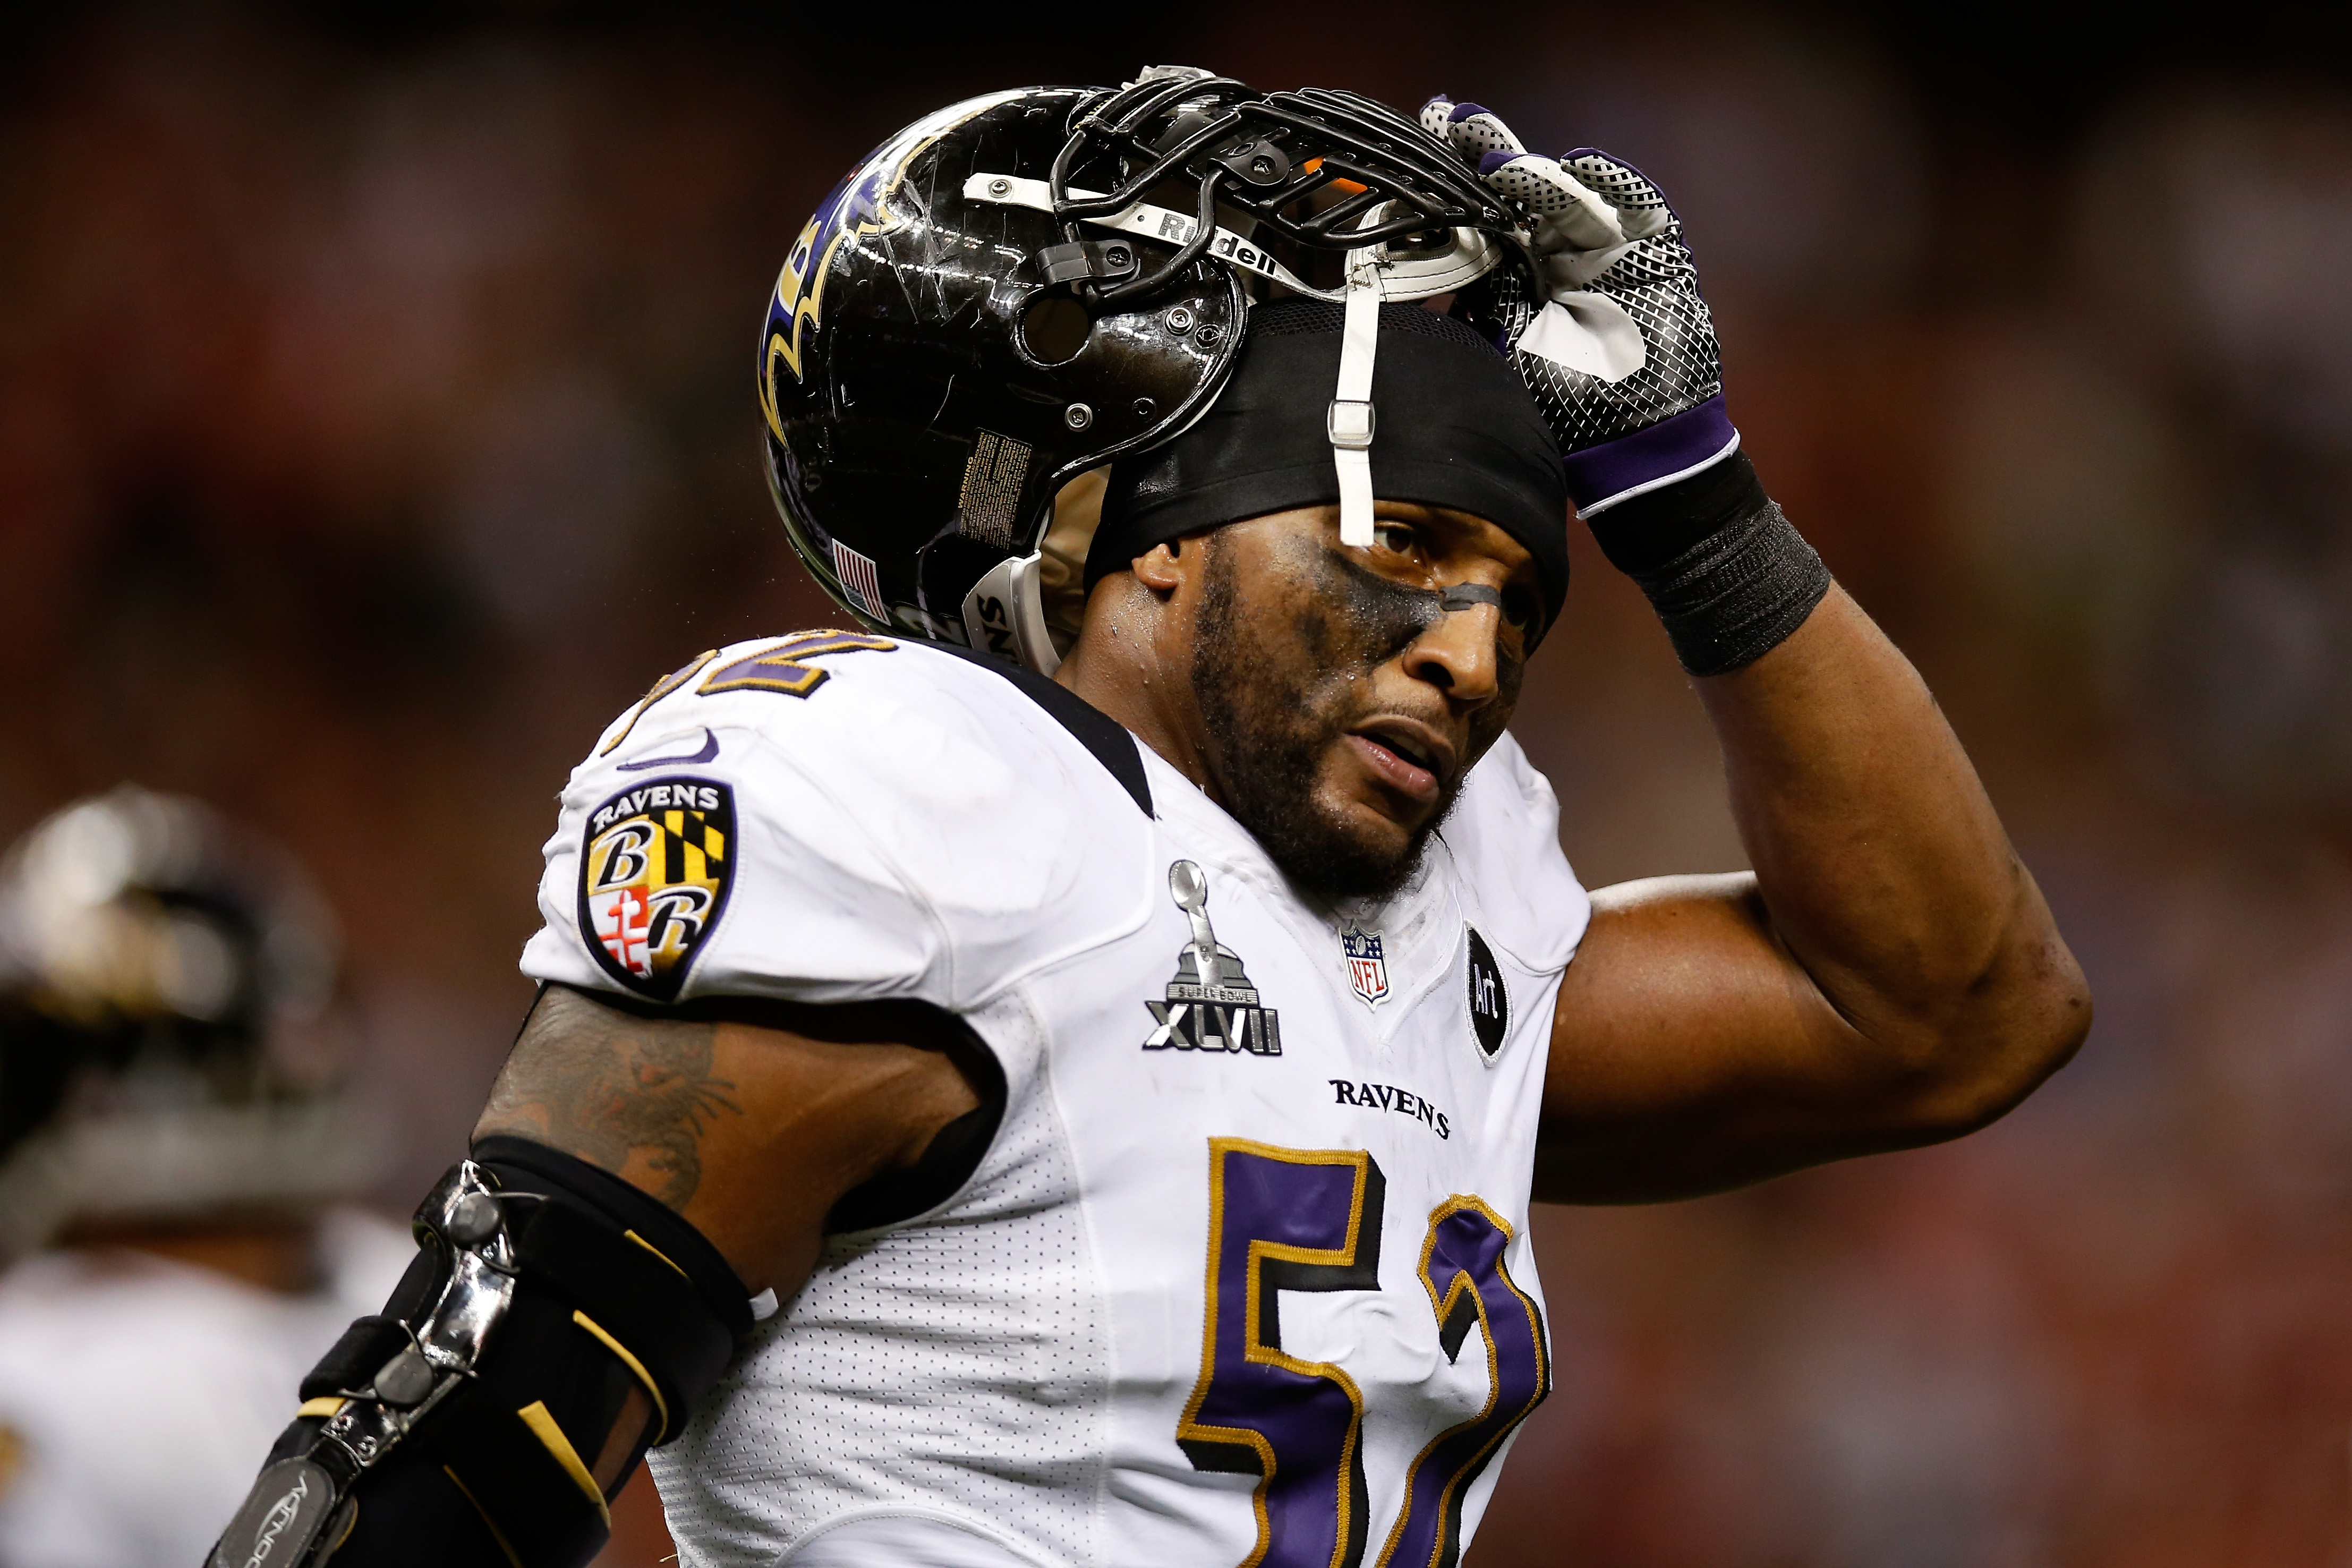 Ray Lewis By Jhafferty